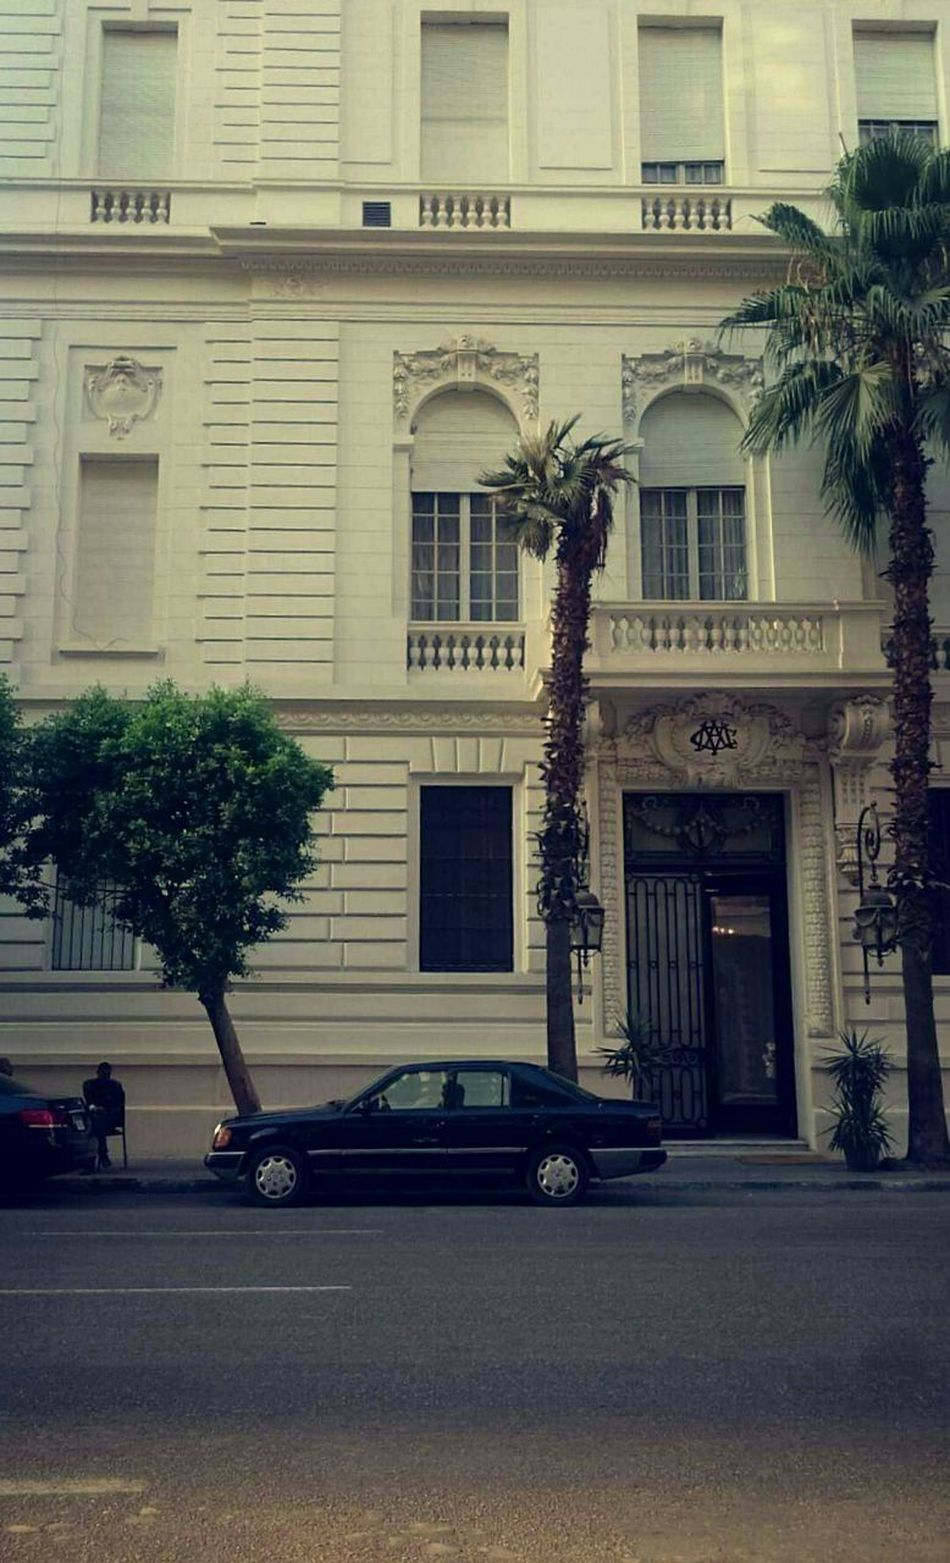 Architecture Transportation Building Exterior Car Built Structure Closed Door In Cairo Arabic Typography Taking Photos Cairo Land Vehicle Mode Of Transport Street Window City Parking Travel Shadow Road Tree In Front Of History Day Parked Outdoors